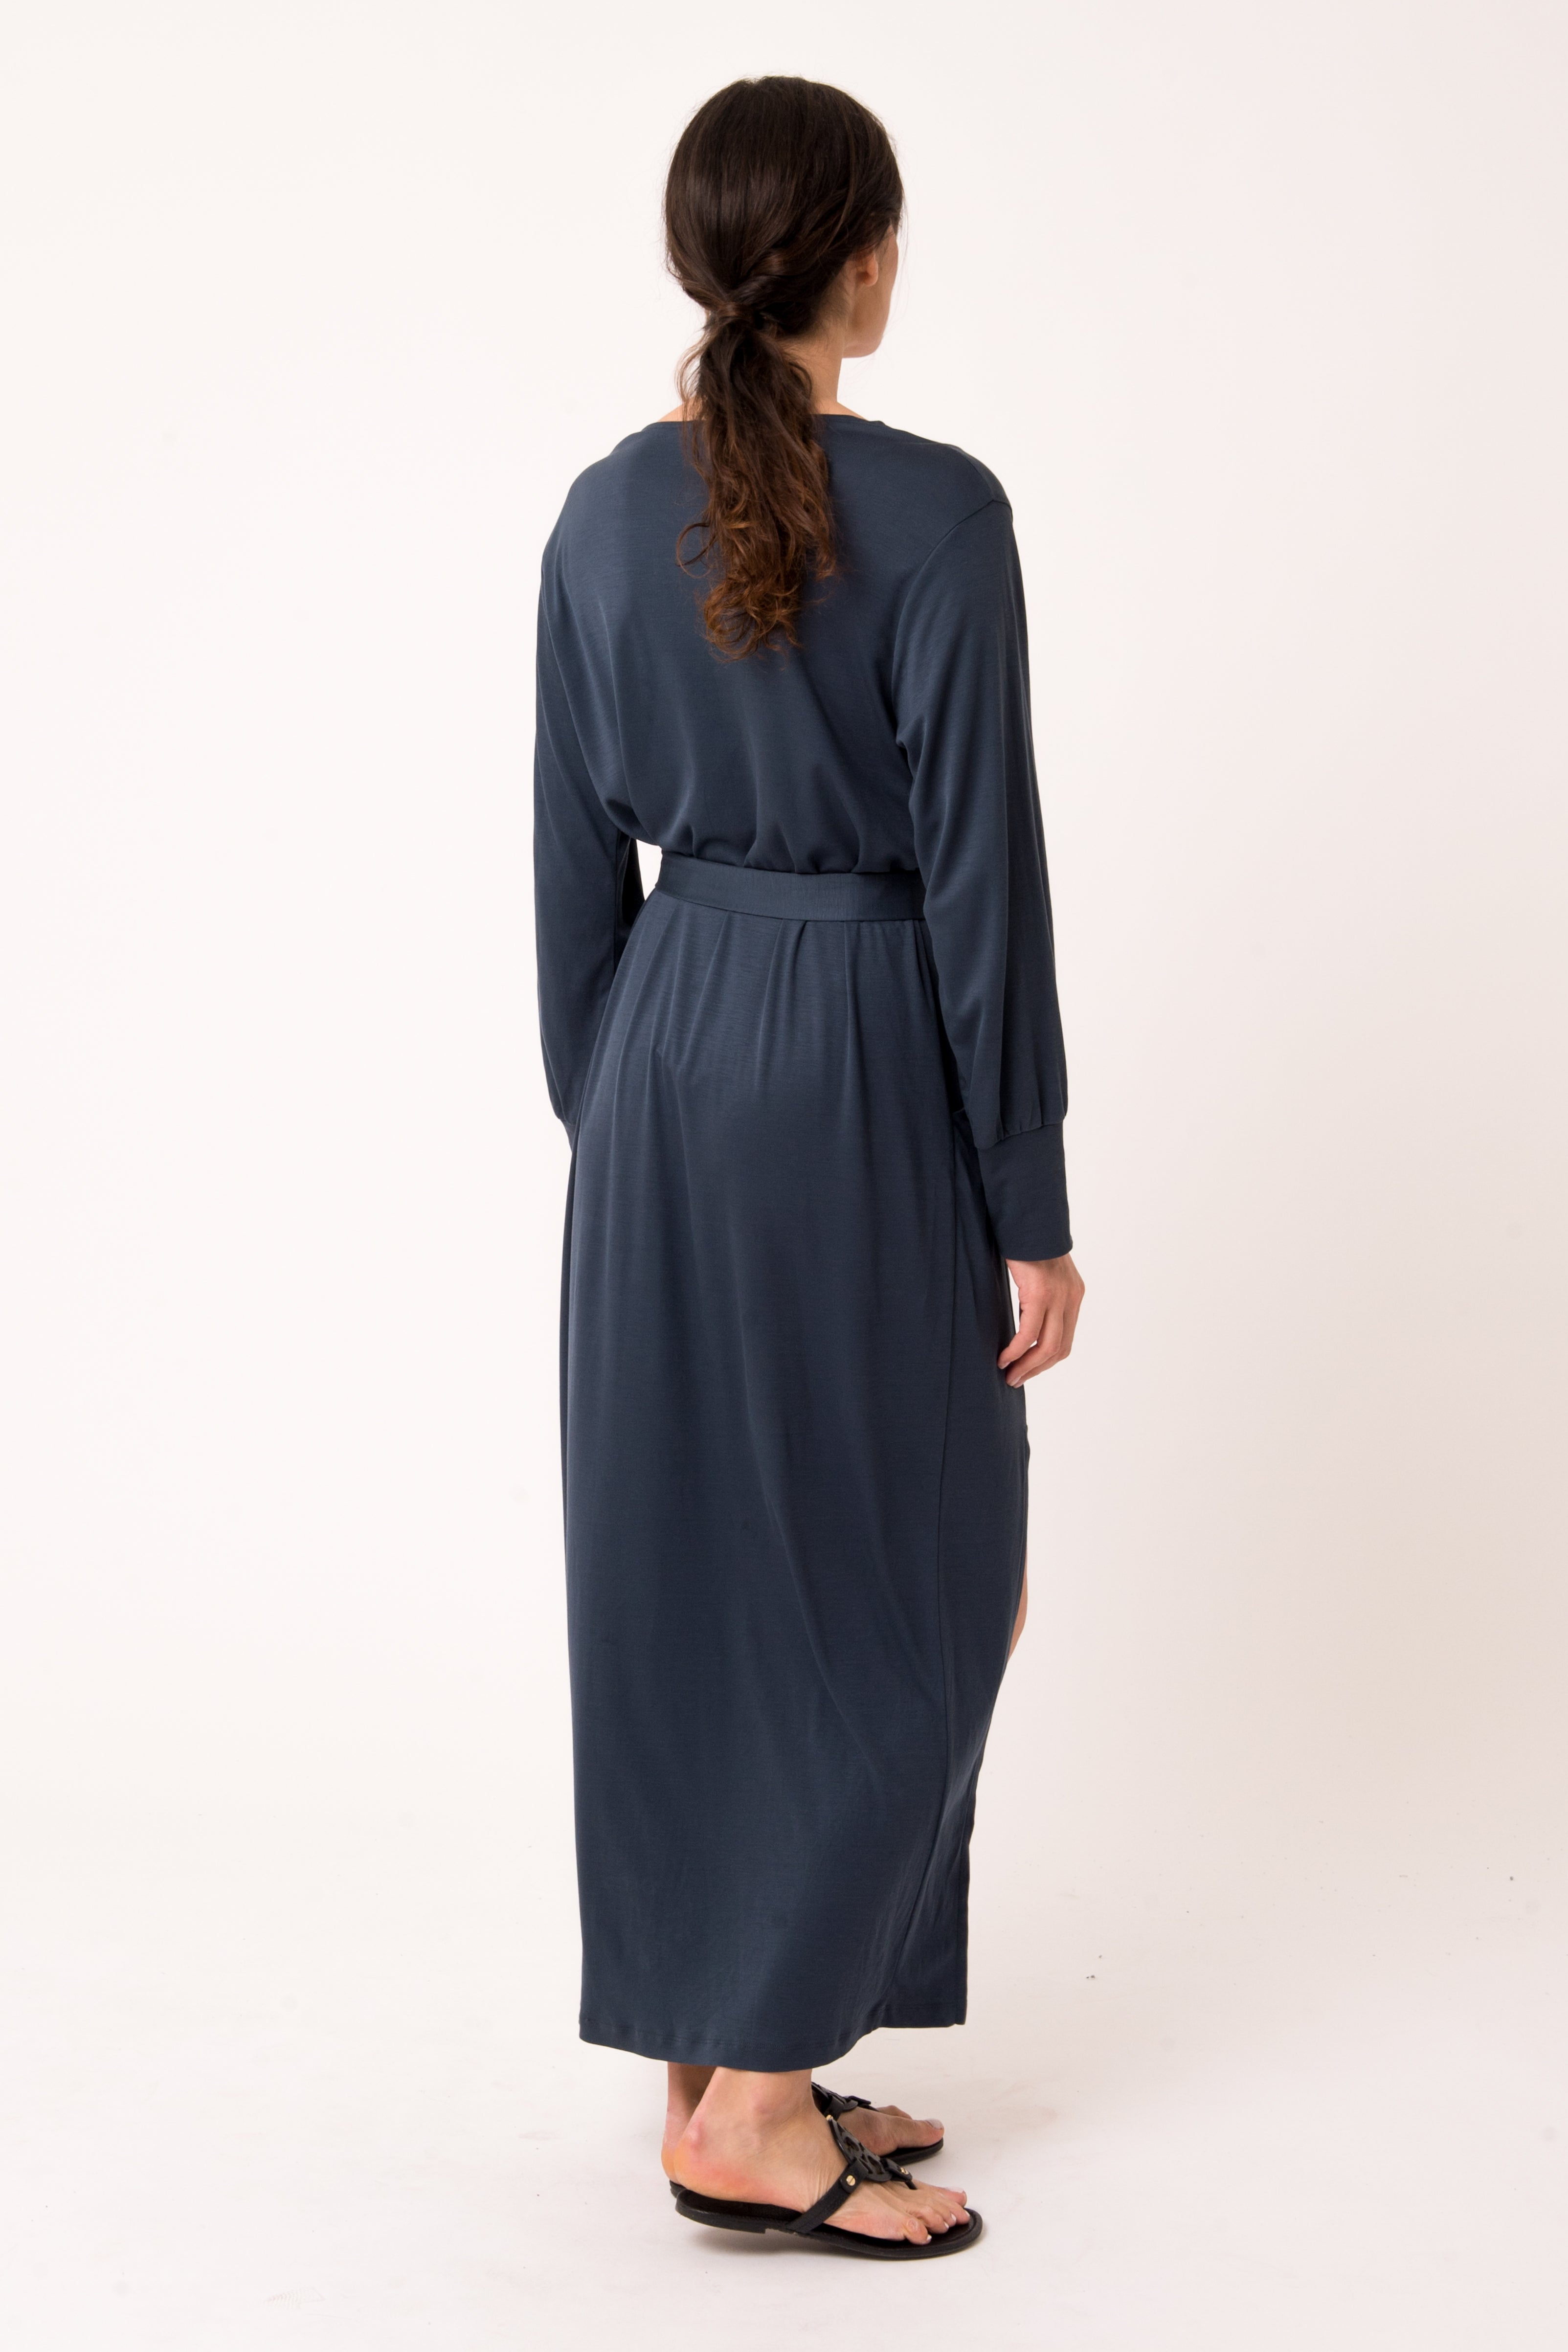 The Long Sleeved Kaftan - AWAN (As We Are Now)